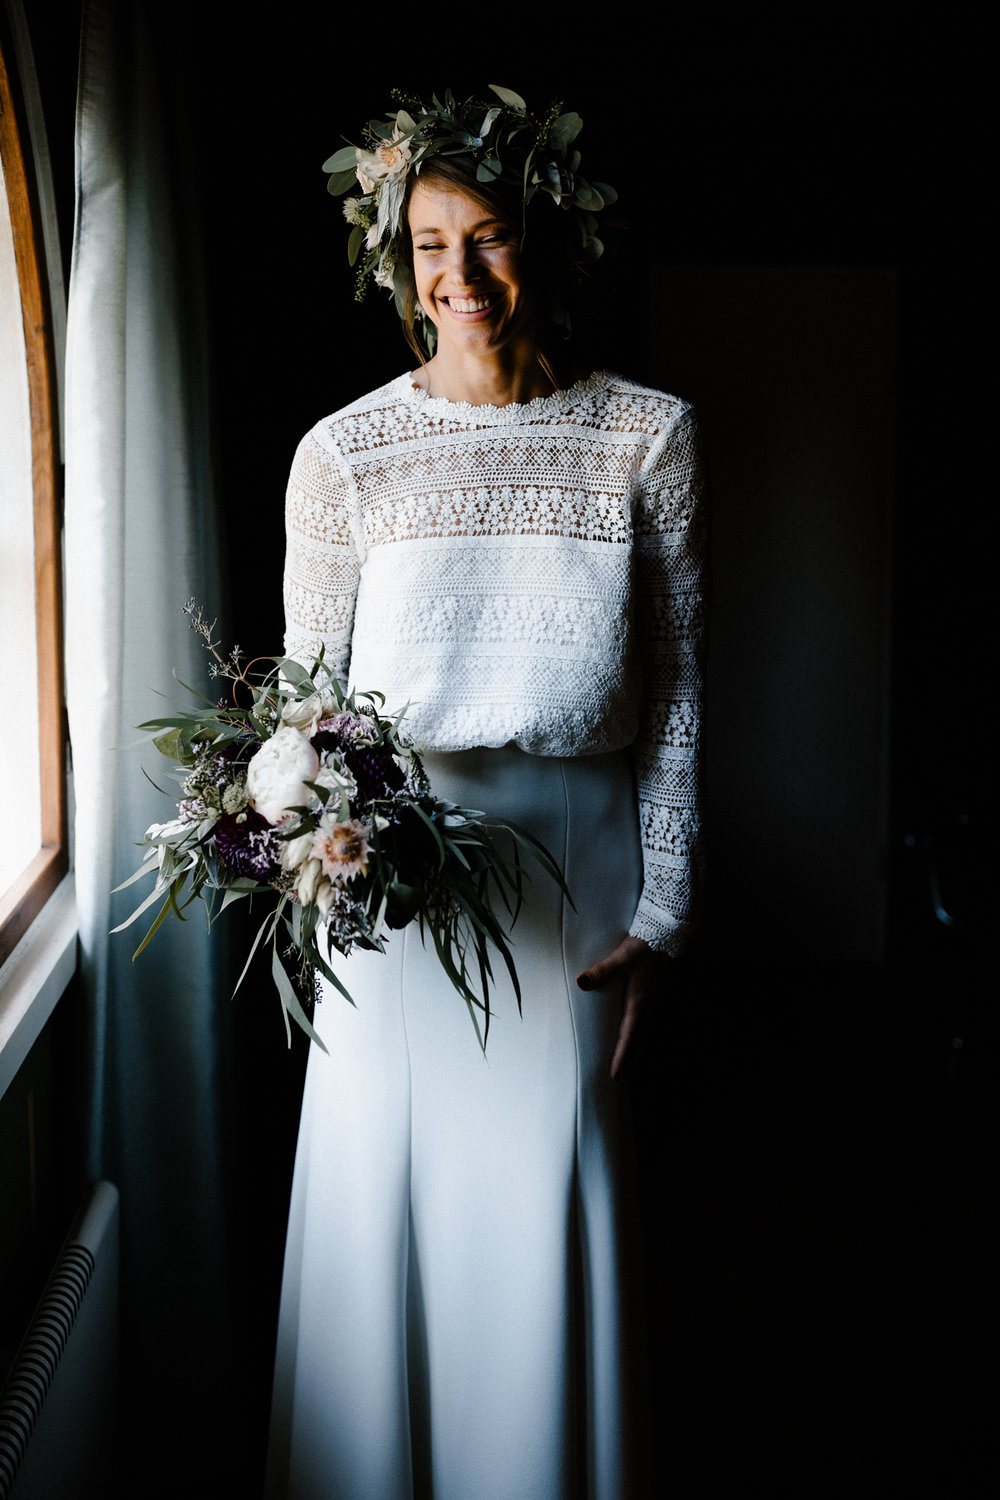 Julien + Johanna | Villa Ivan Falin | by Patrick Karkkolainen Wedding Photography-47.jpg